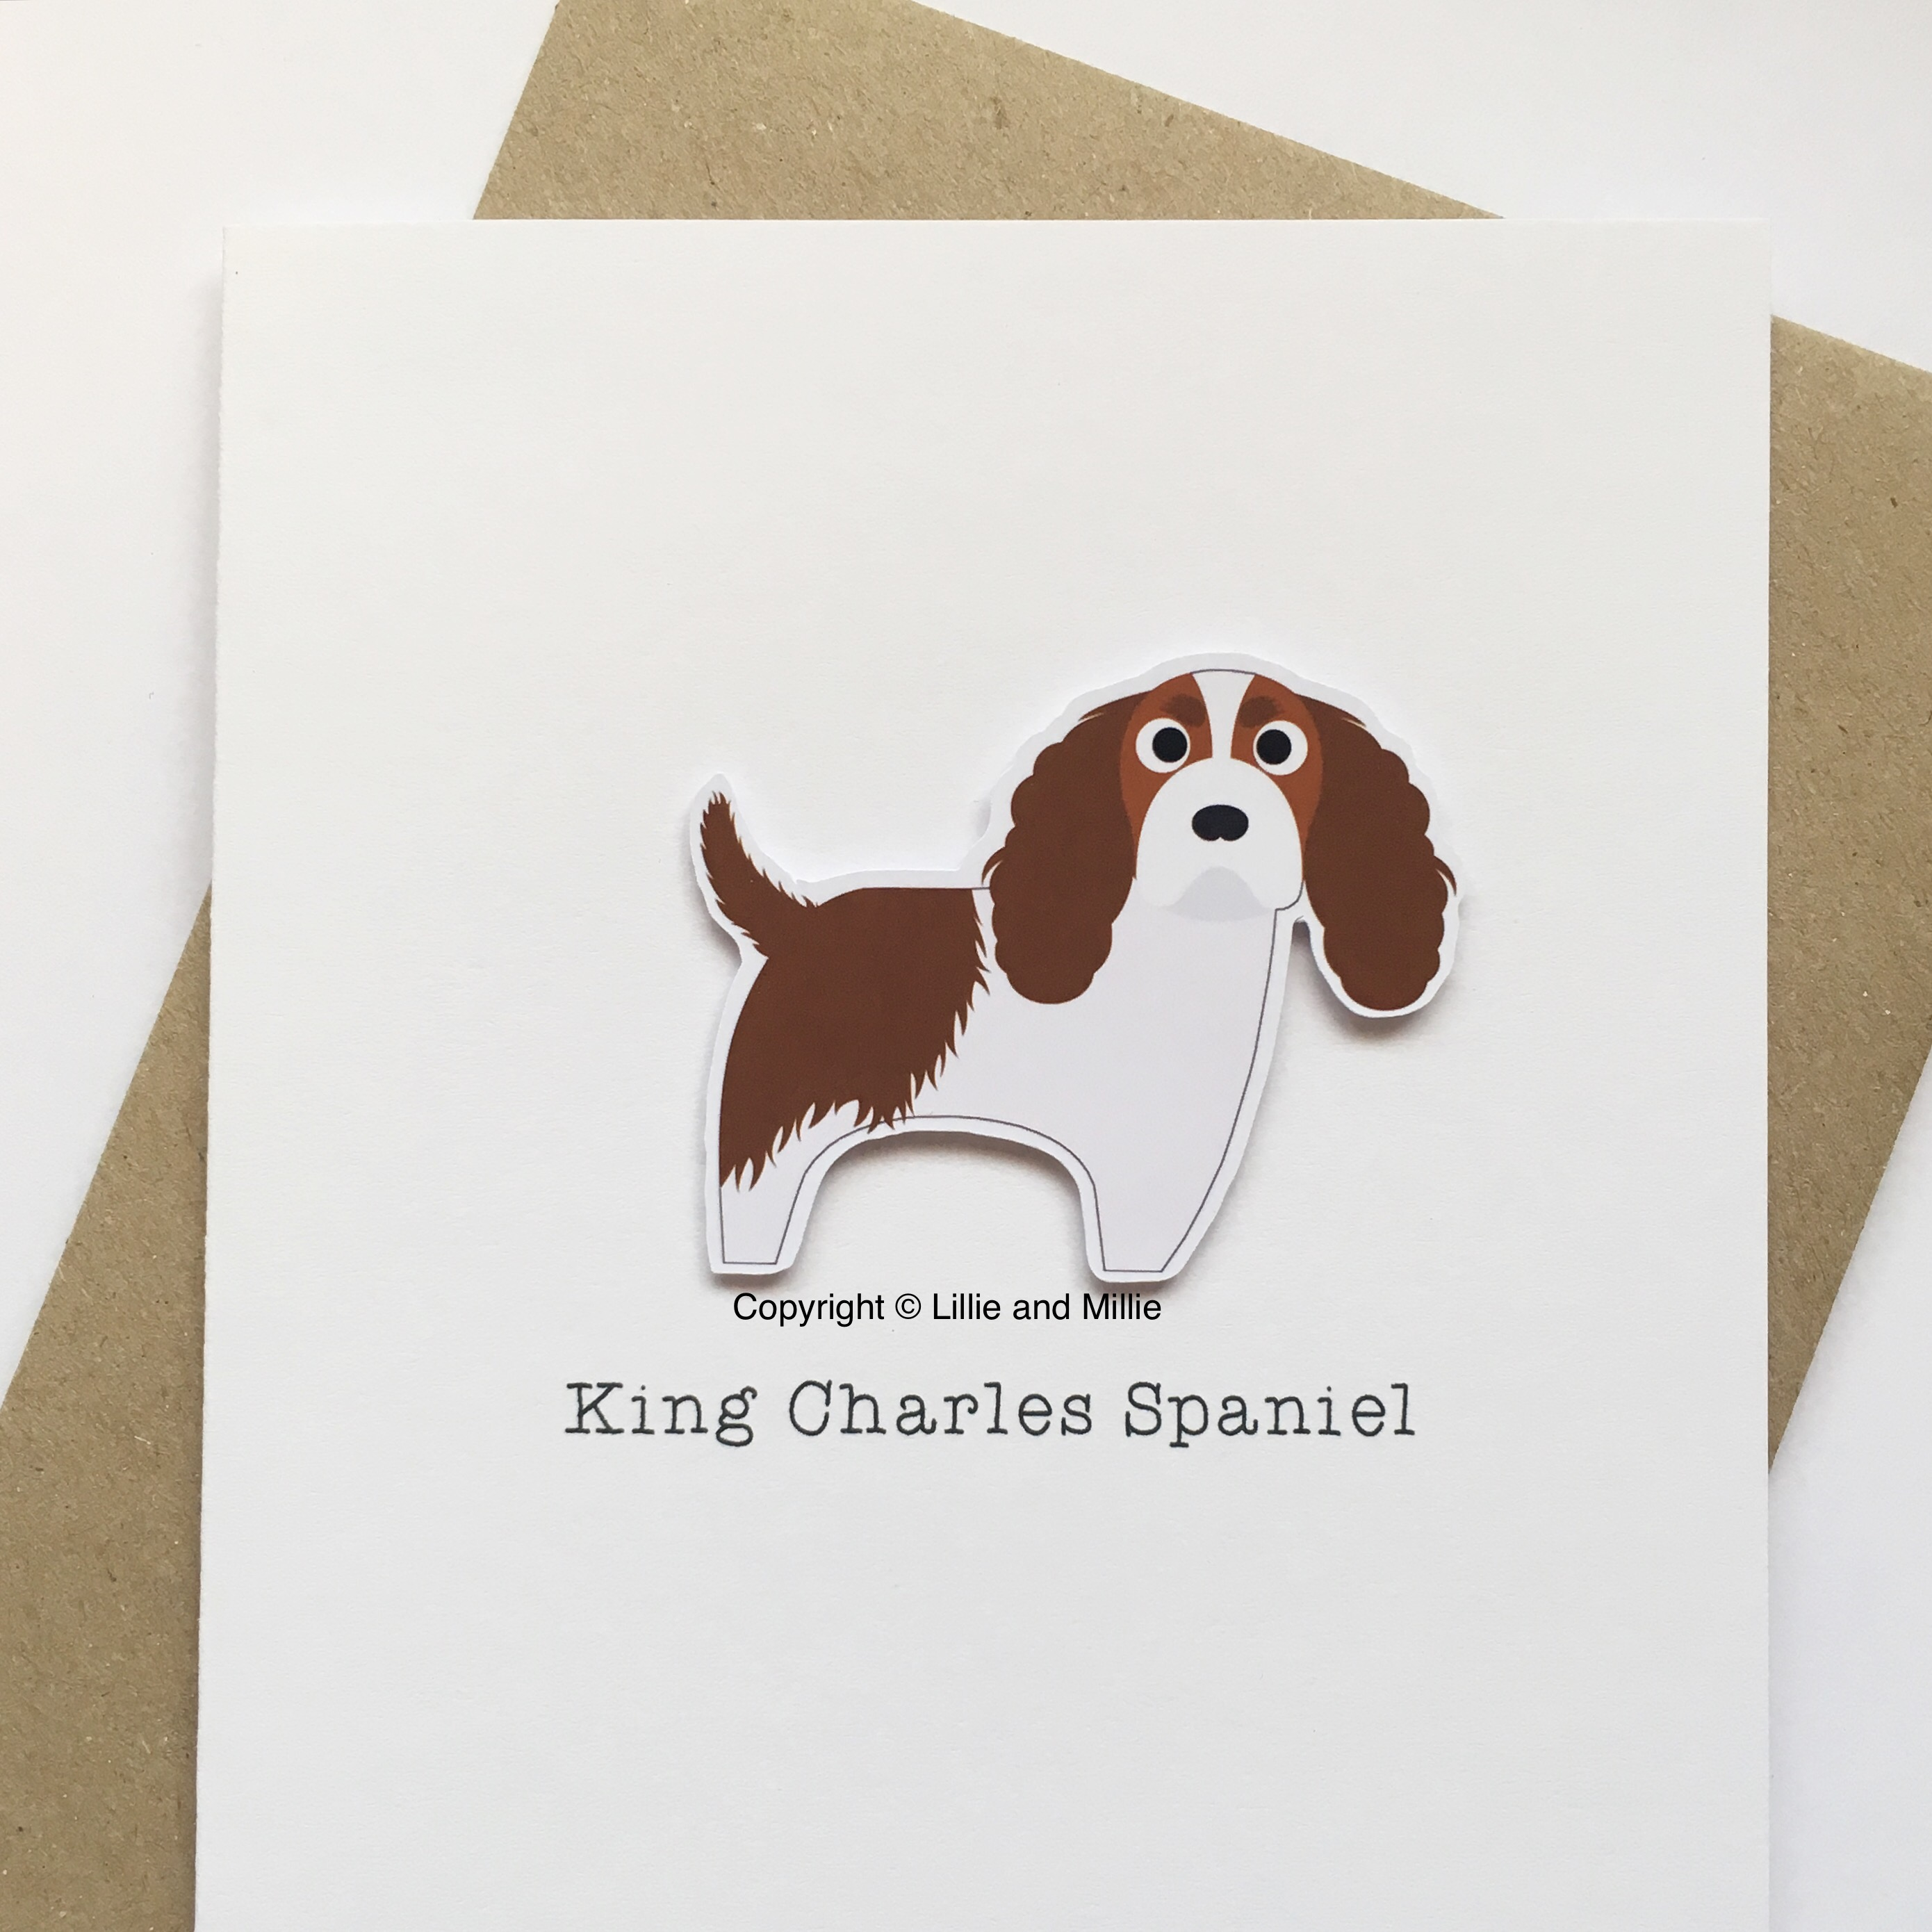 Cute and Cuddly King Charles Spaniel Greetings Card